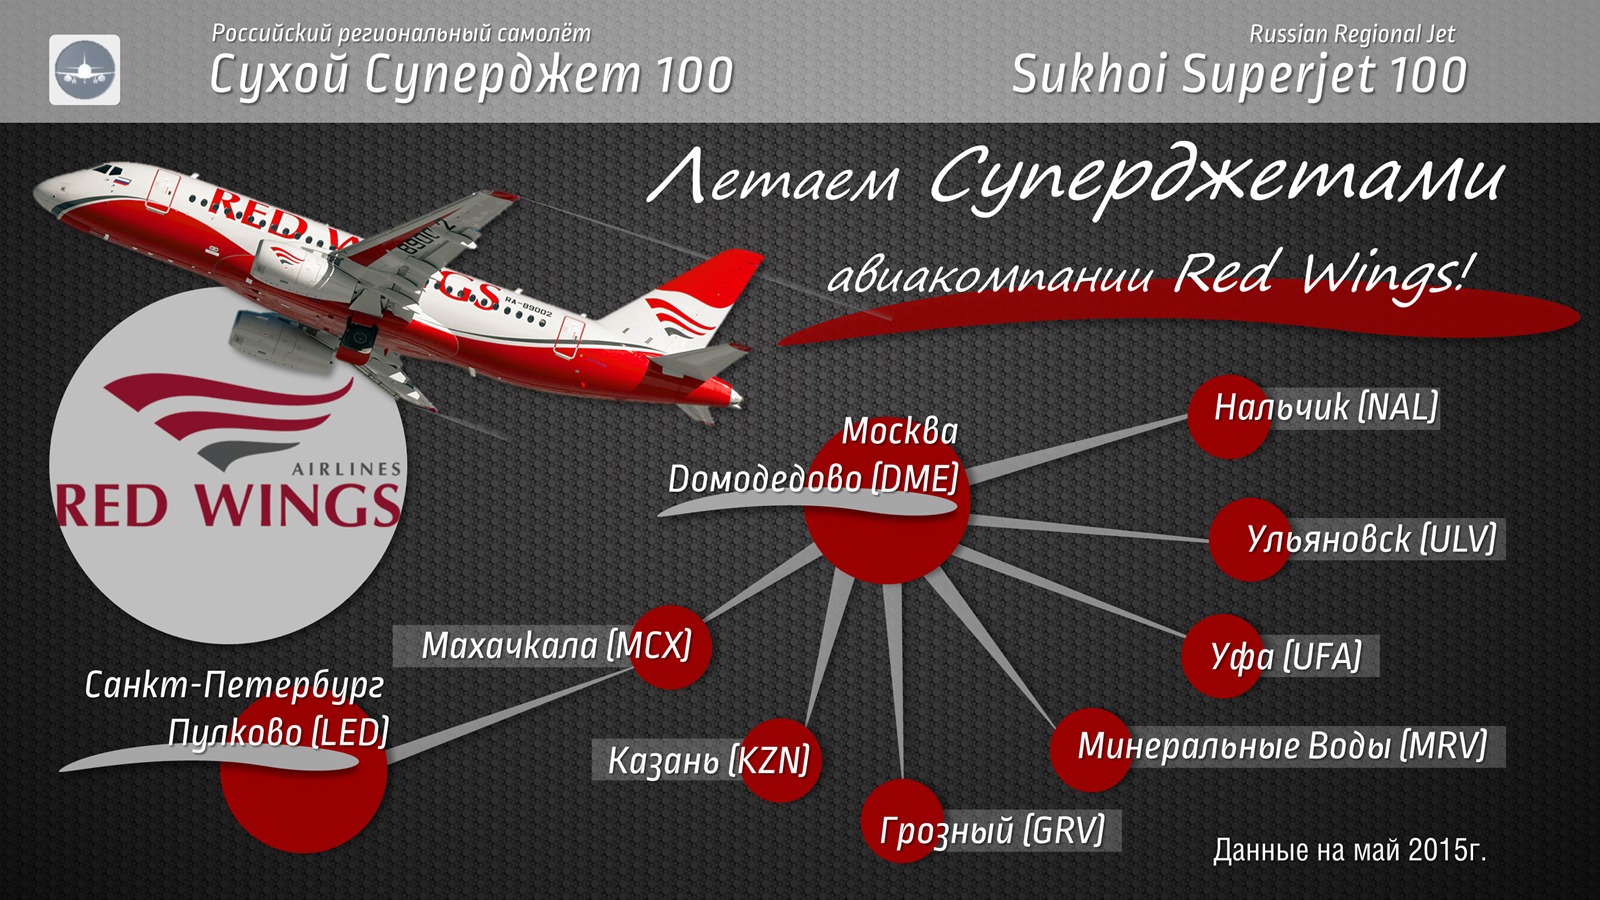 Sukhoi%20Superjet%20SSJ100%20Red%20Wings%20Airlines%20Network.png